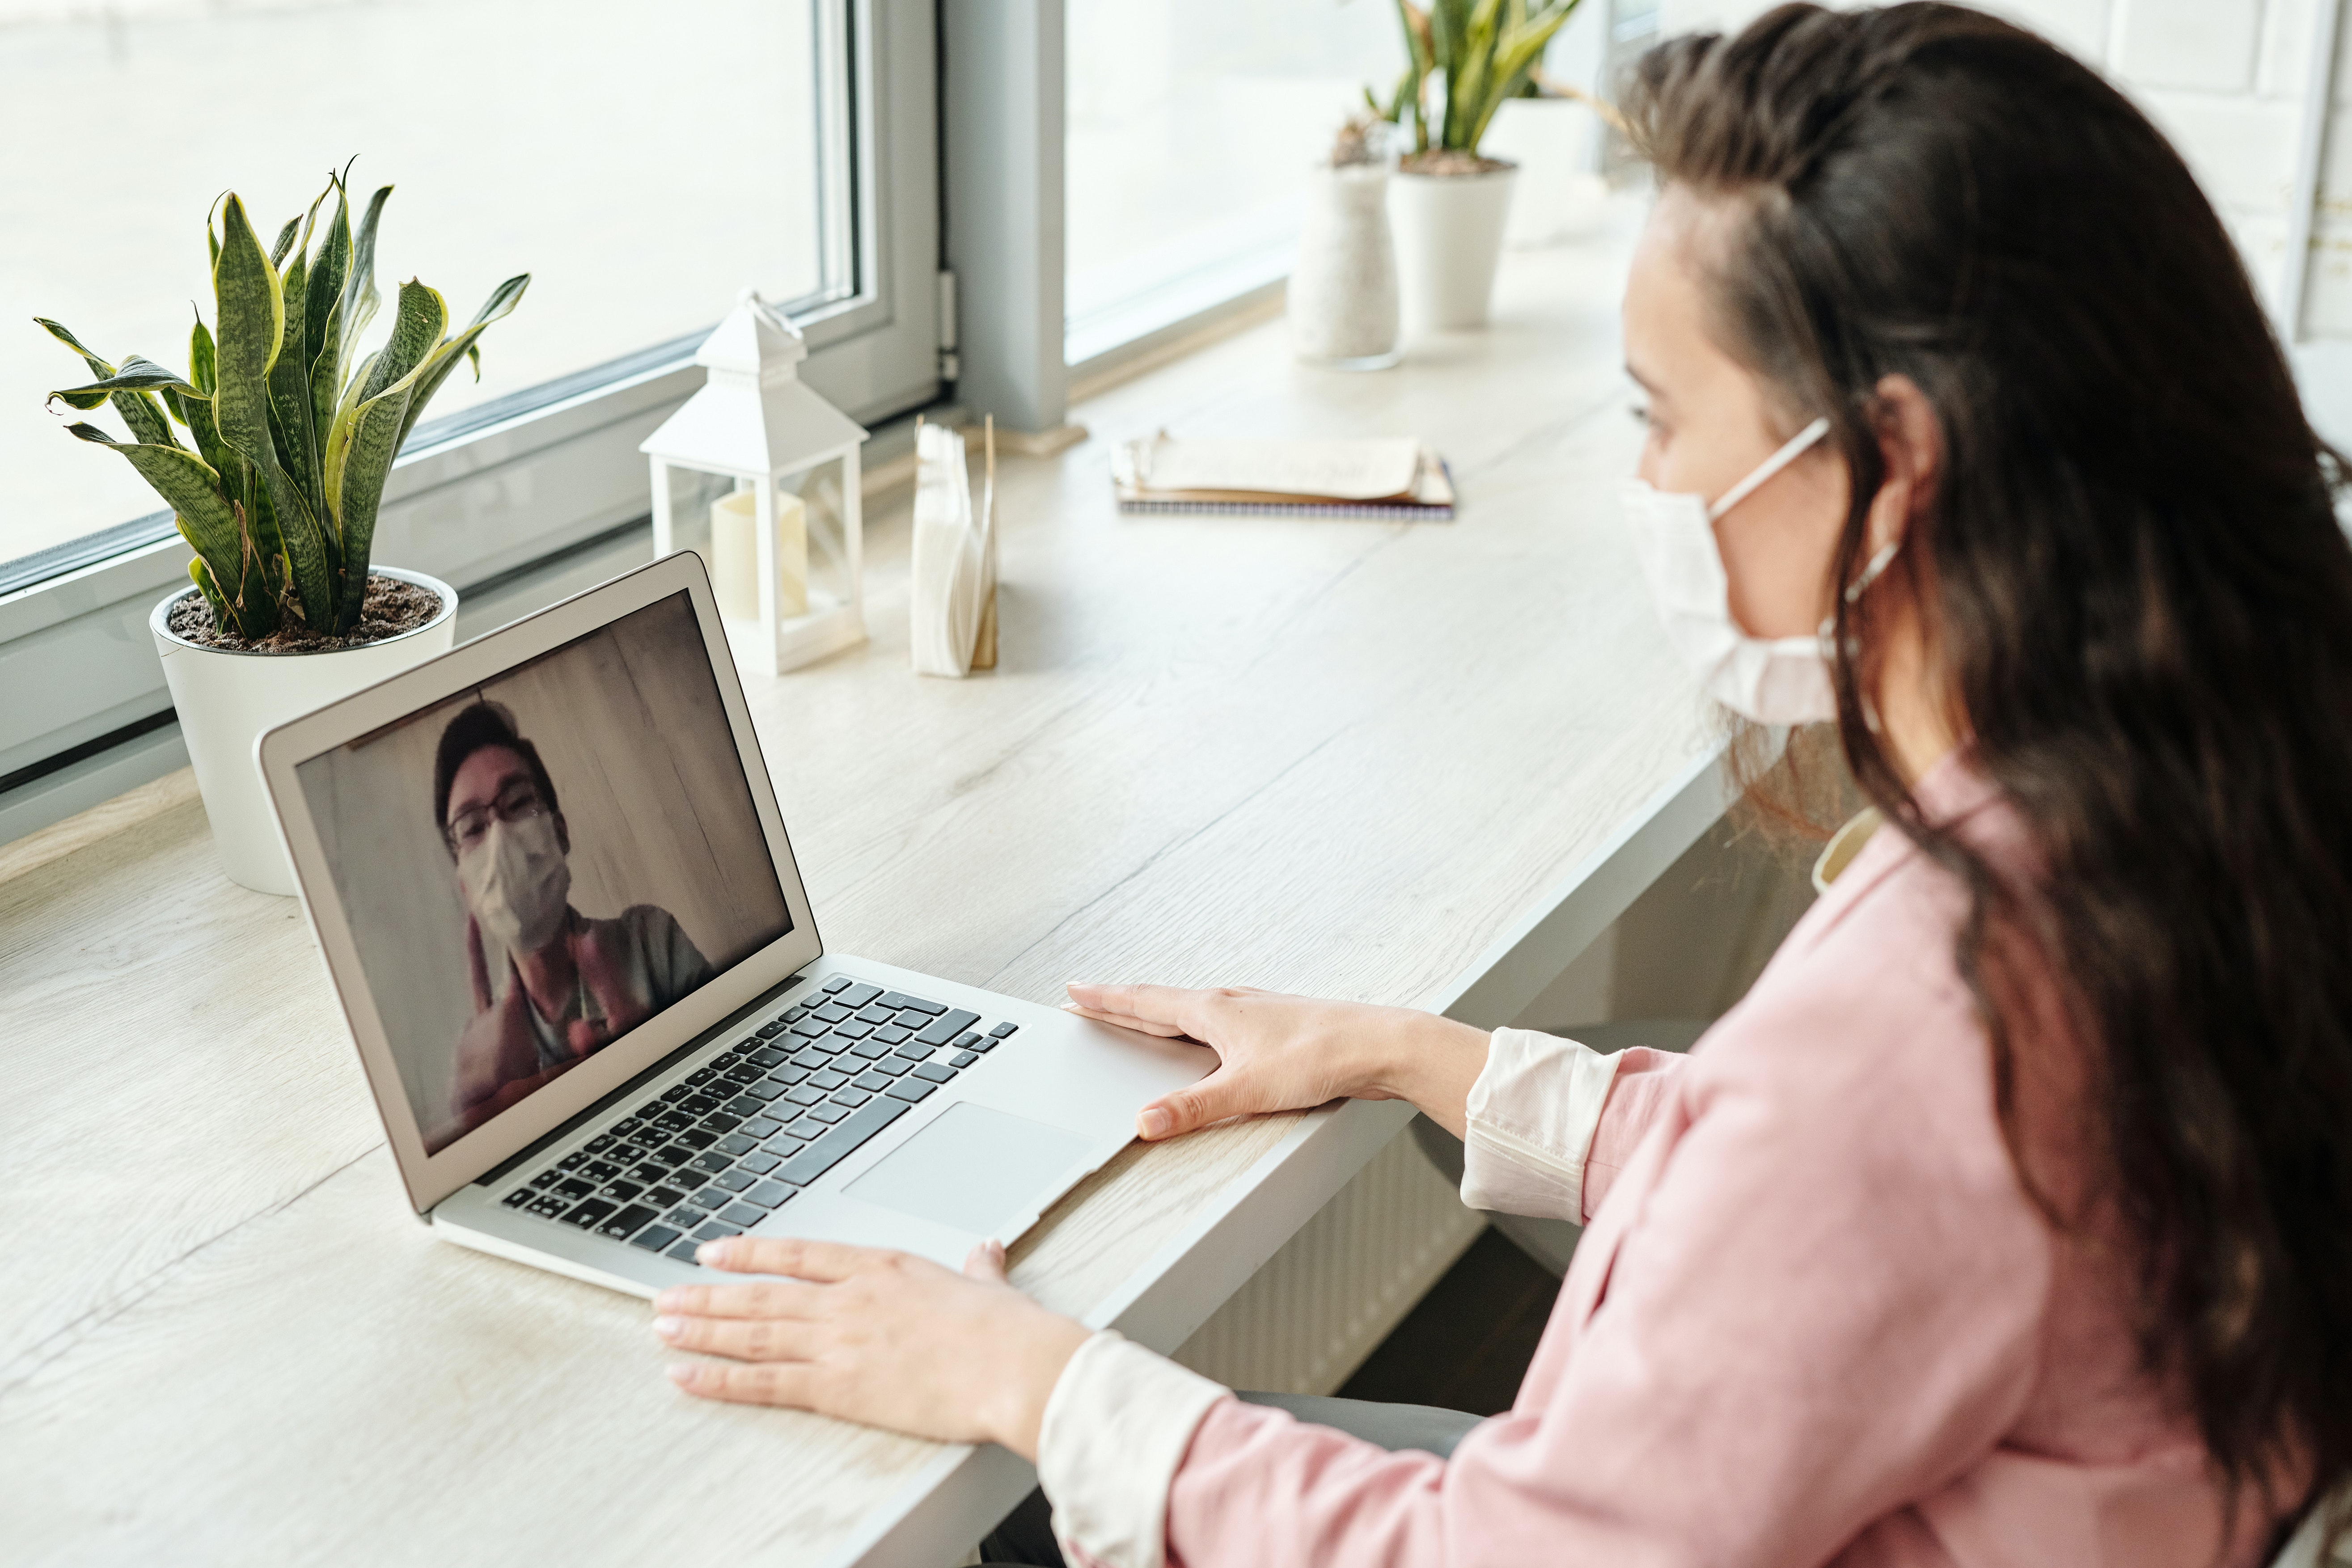 Woman having telehealth appointment Photo by Edward Jenner from Pexels